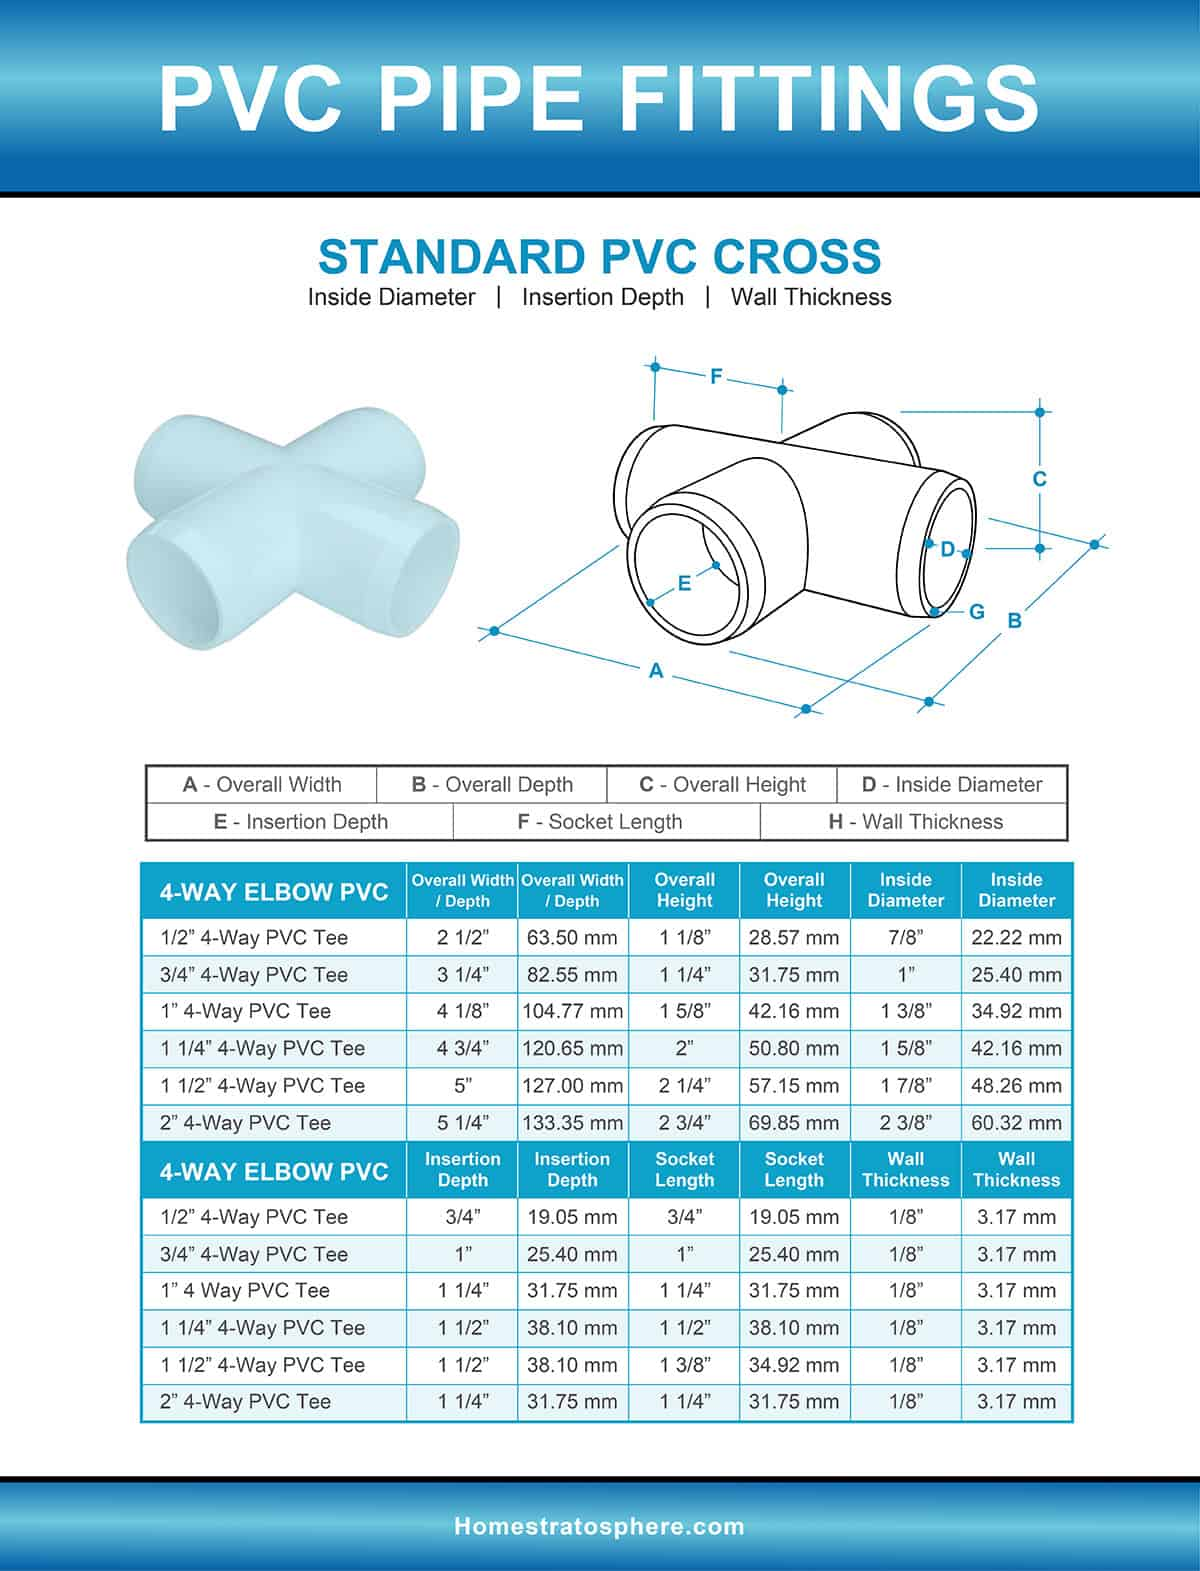 Standard PVC Pipe Cross Fitting Illustration and Sizes Chart